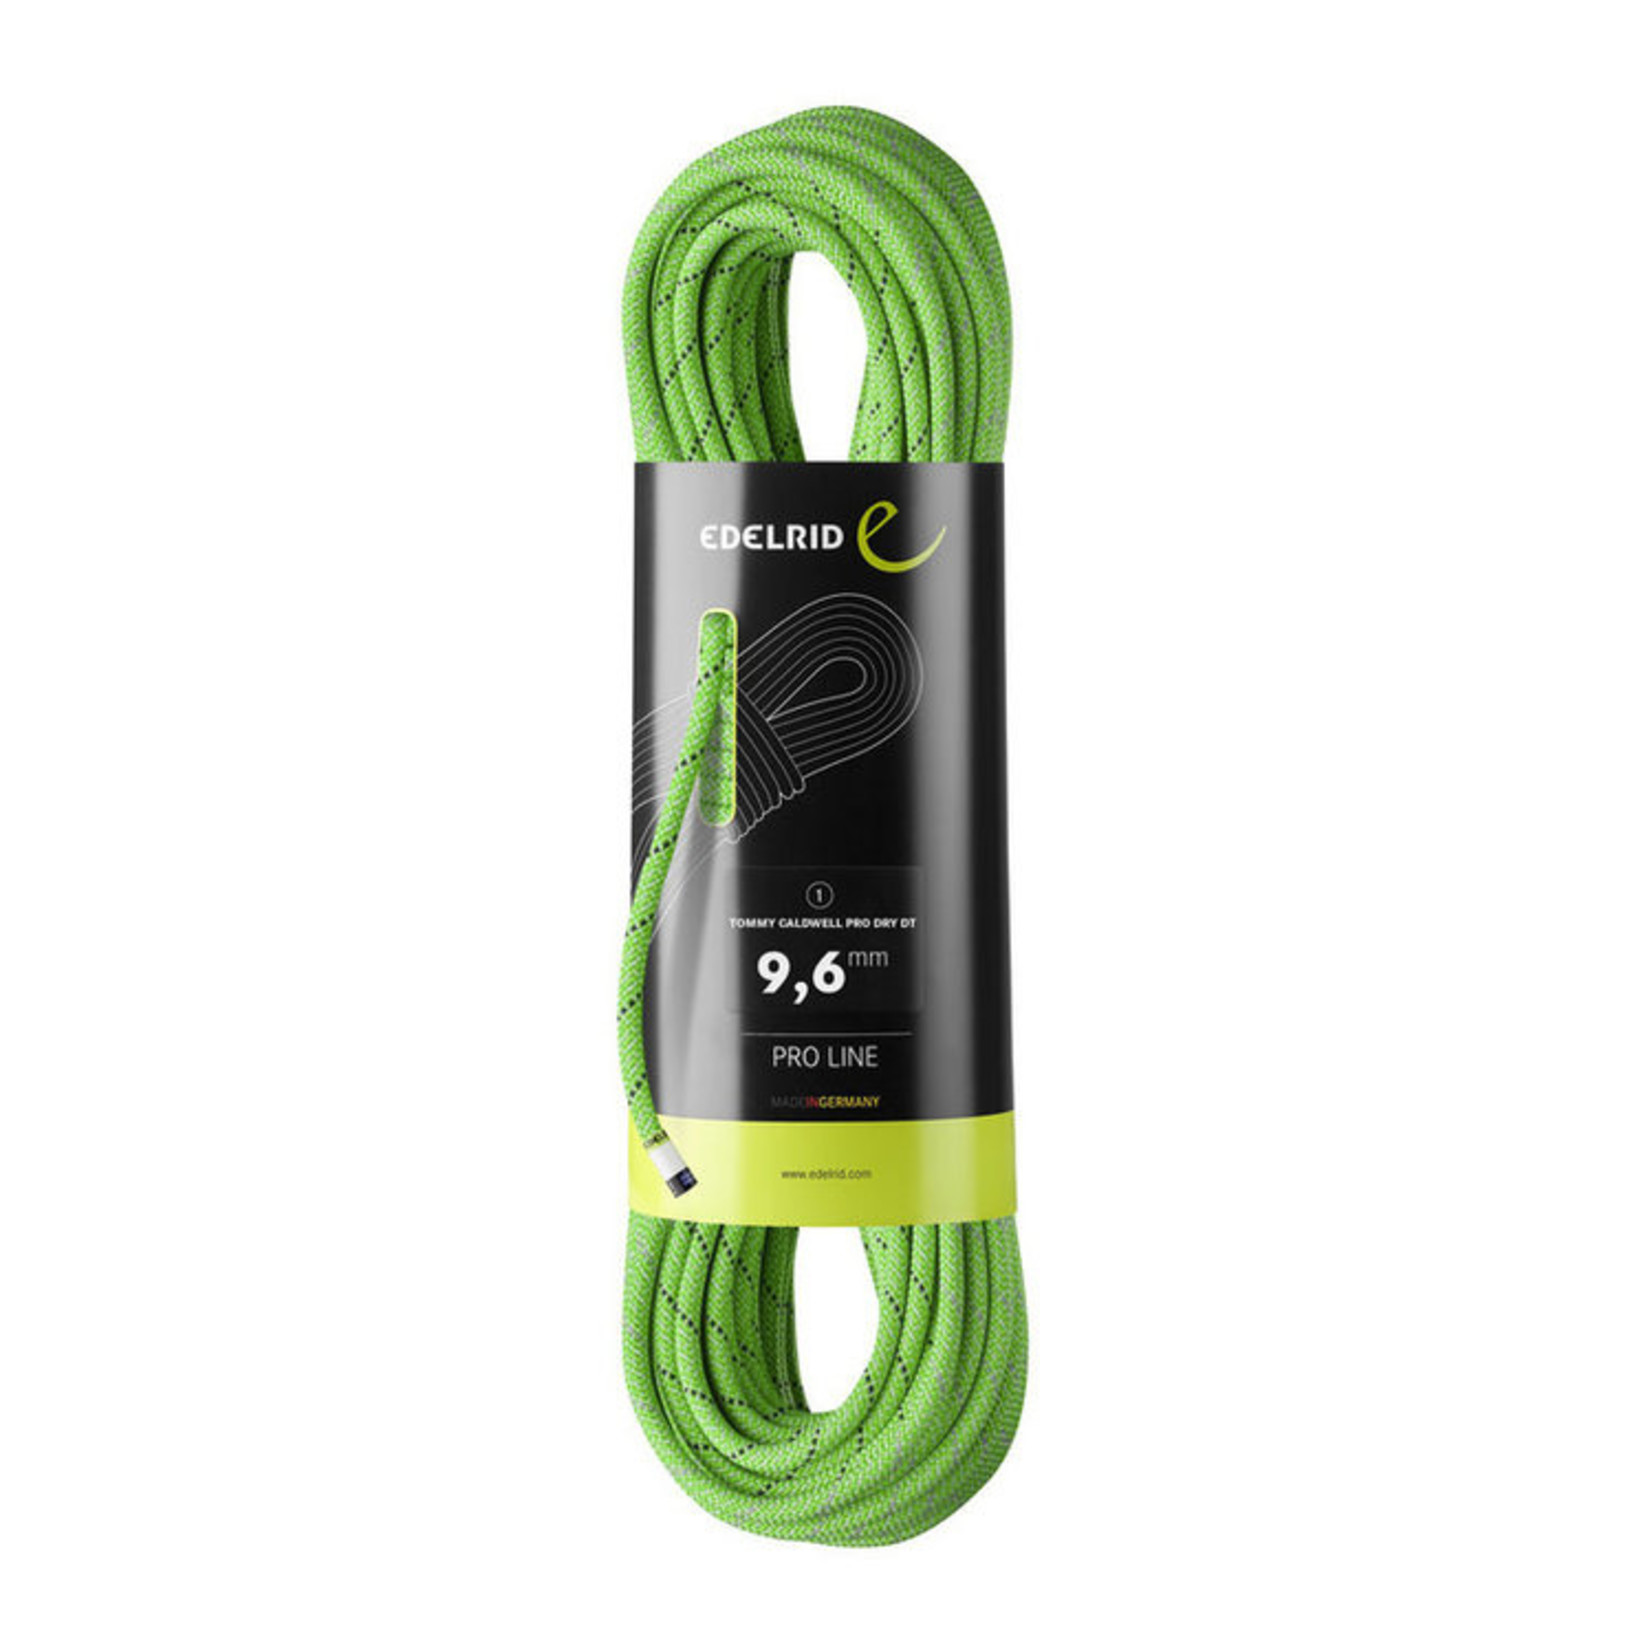 Edelrid Tommy Caldwell DuoTec 9.6mm, 60m, lime